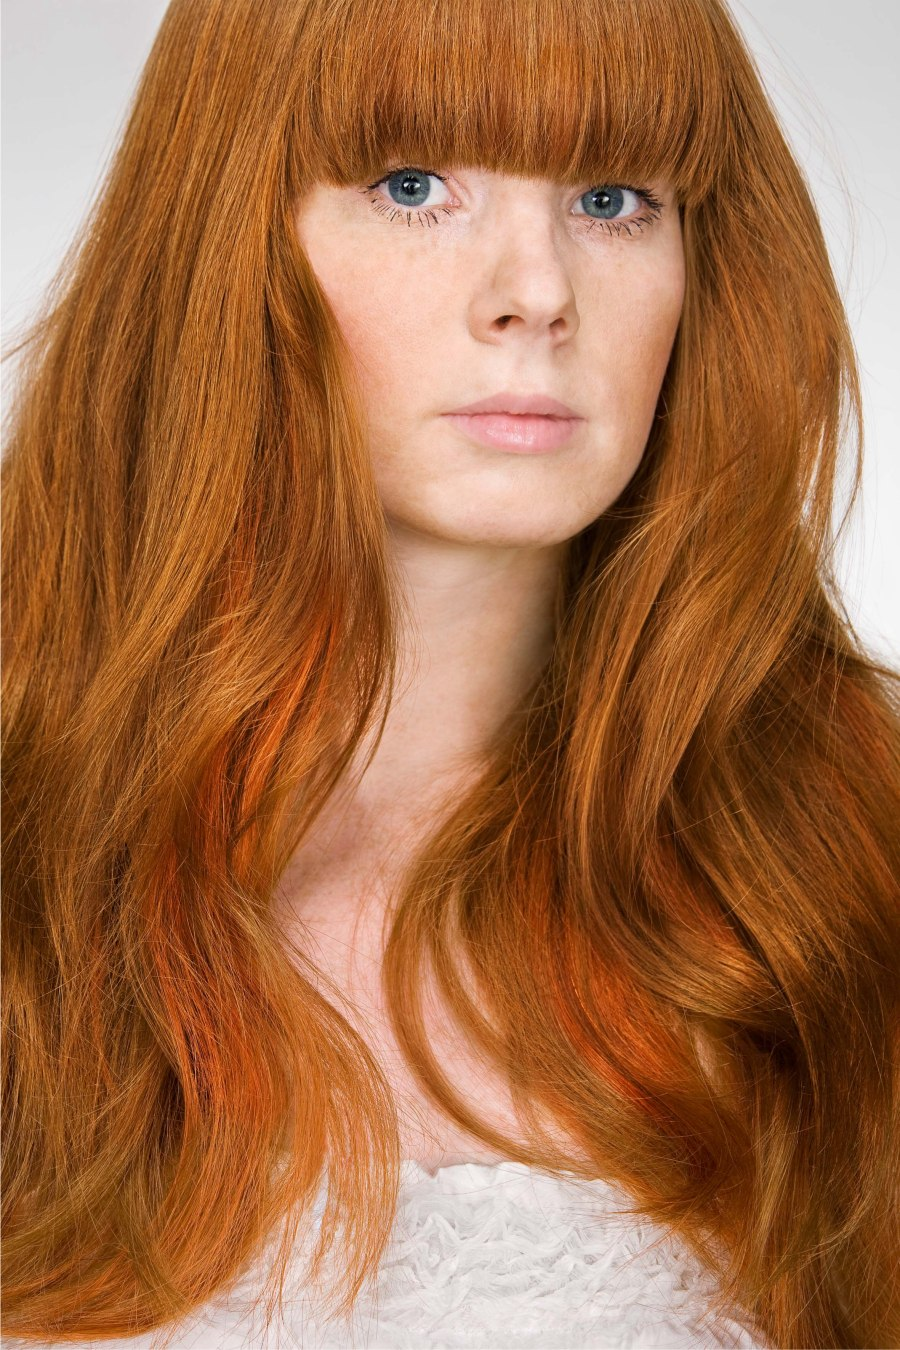 Beauty Ideal Of Long Red Hair And A Pale Skin